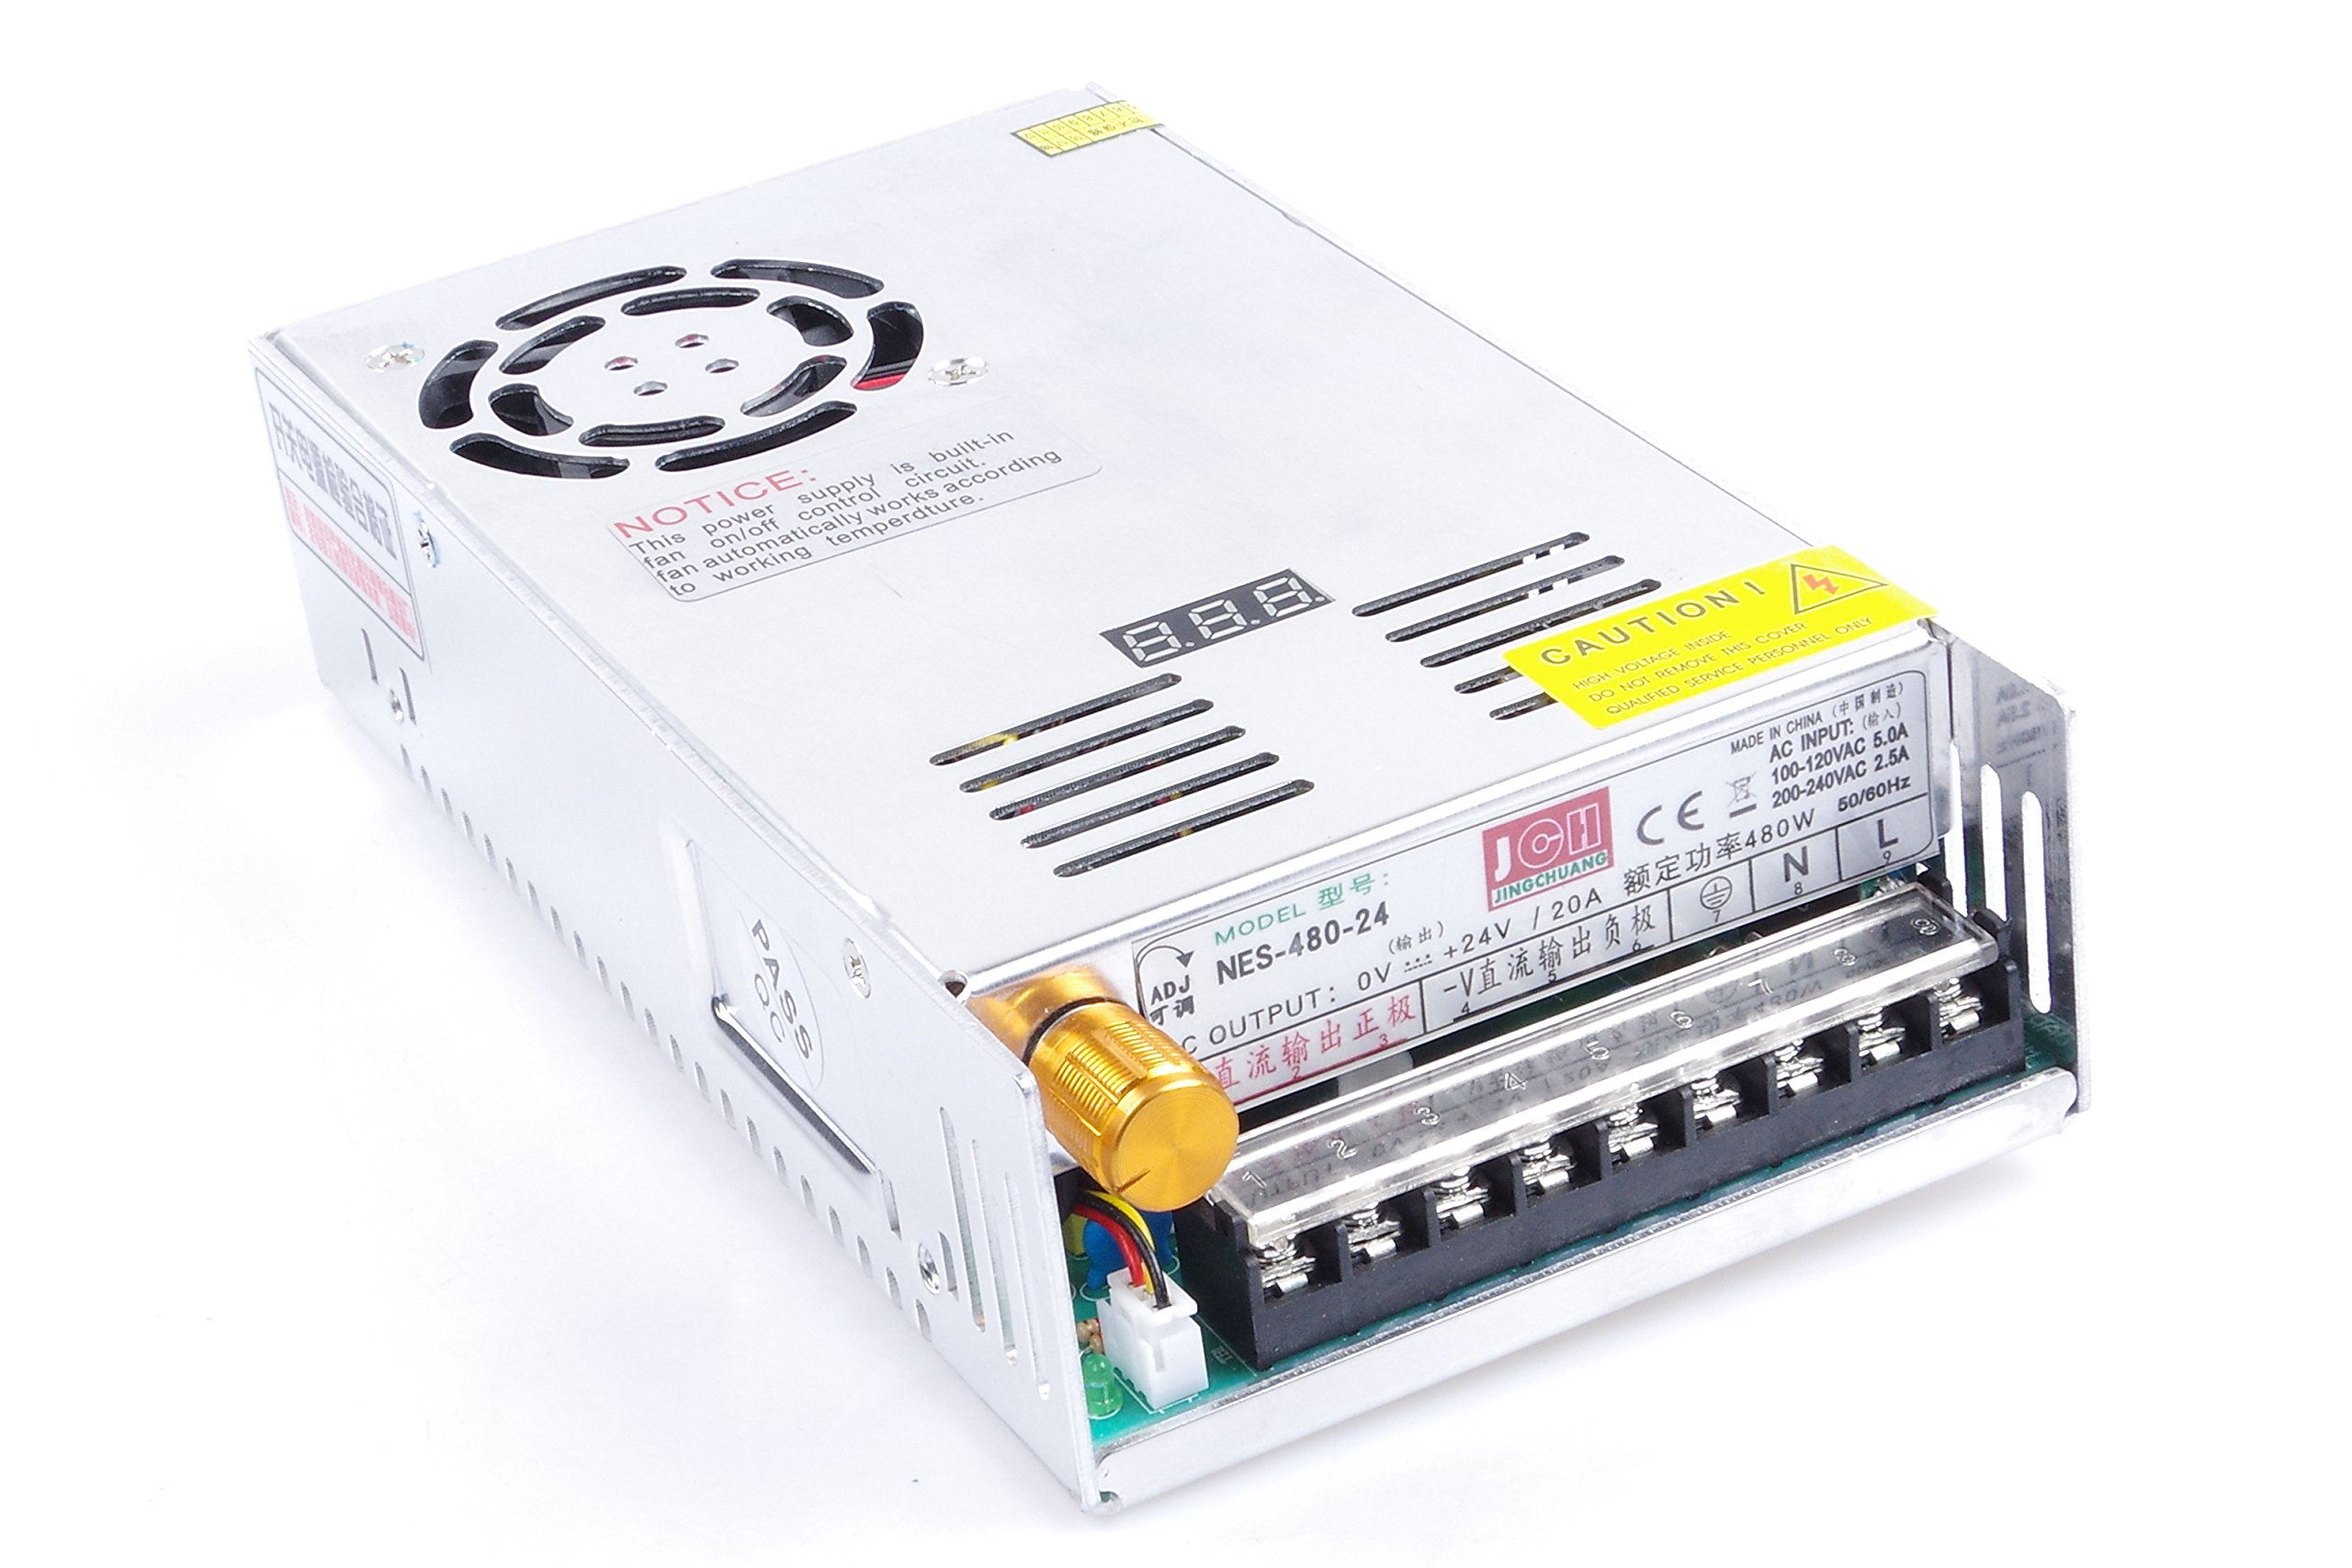 Adjustable DC Power Voltage Converter AC 110V-220V to DC 0-24V Module 24V 20A Switching Power Supply Digital Display 480W Voltage Regulator Transformer Built in Cooling Fan (DC 0-24V 20A)